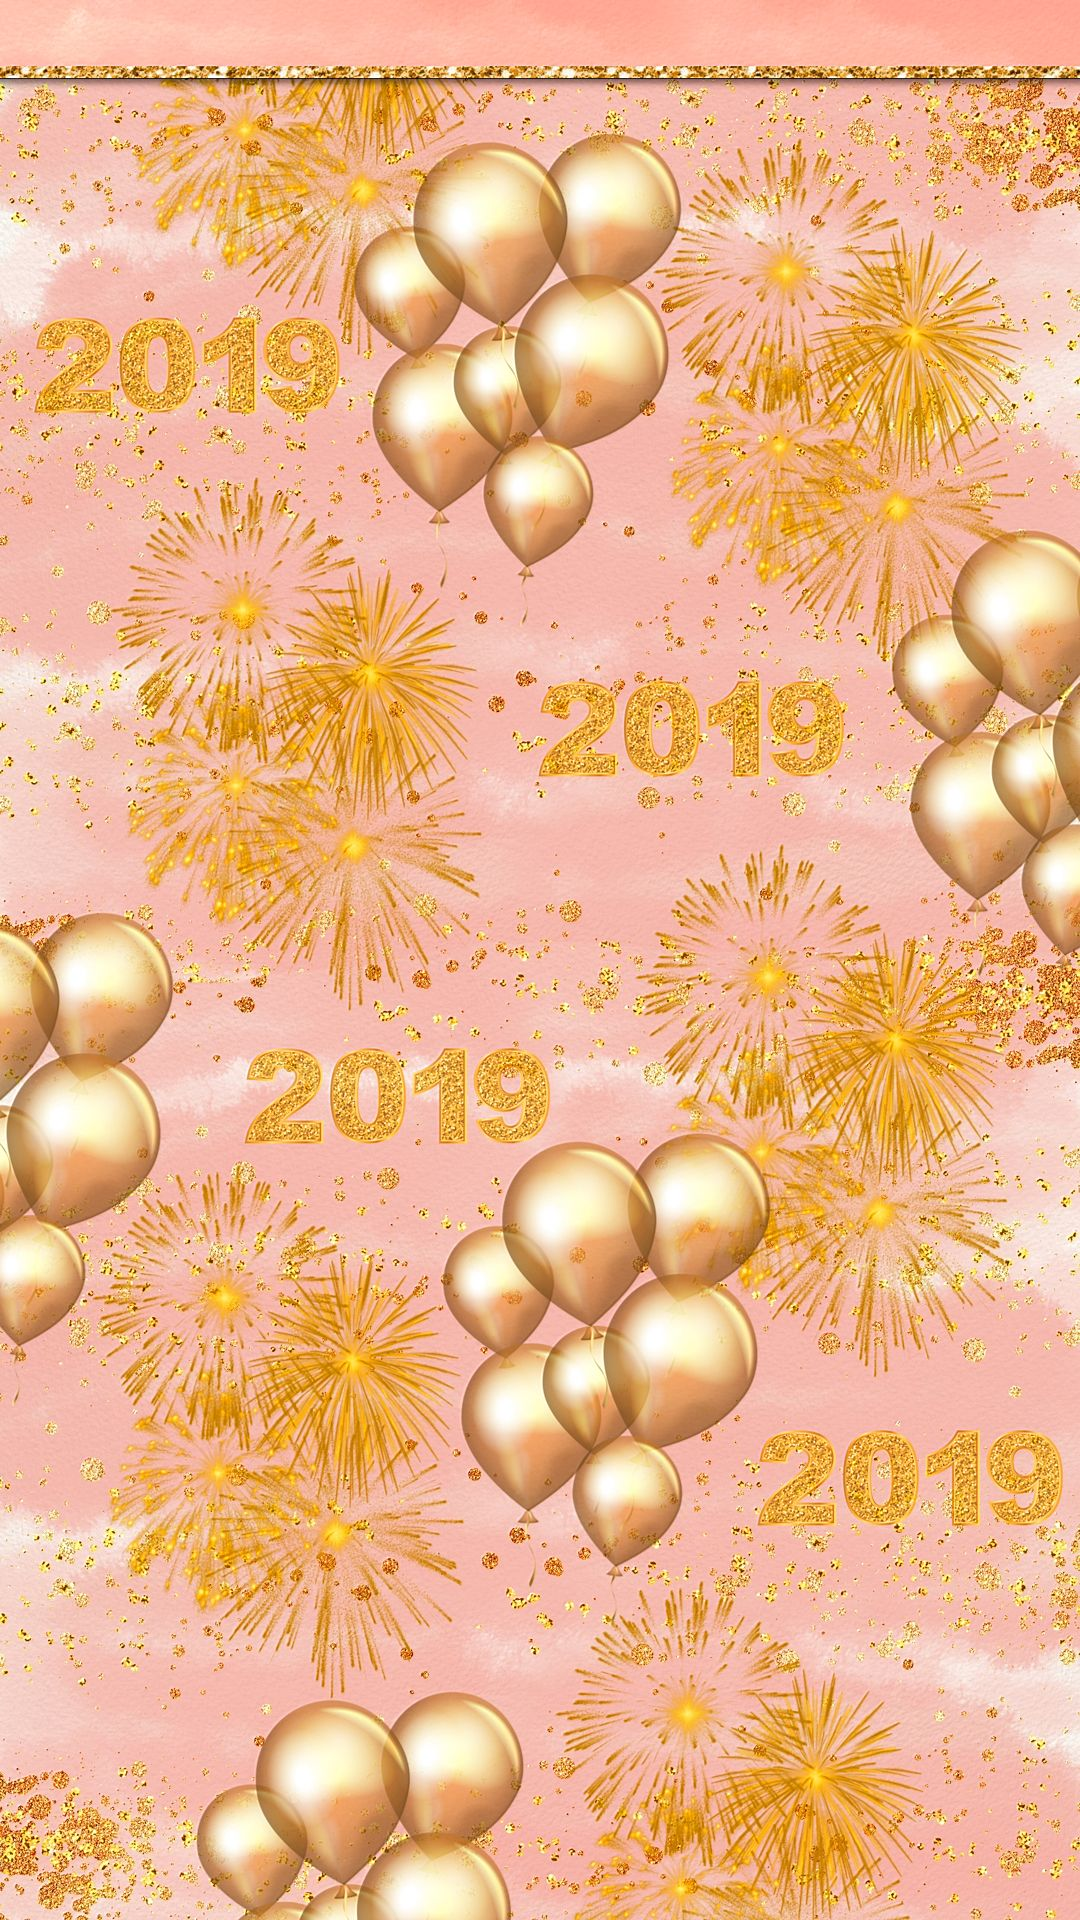 Iphone Android New Year Wallpaper Holiday Wallpaper Wallpaper